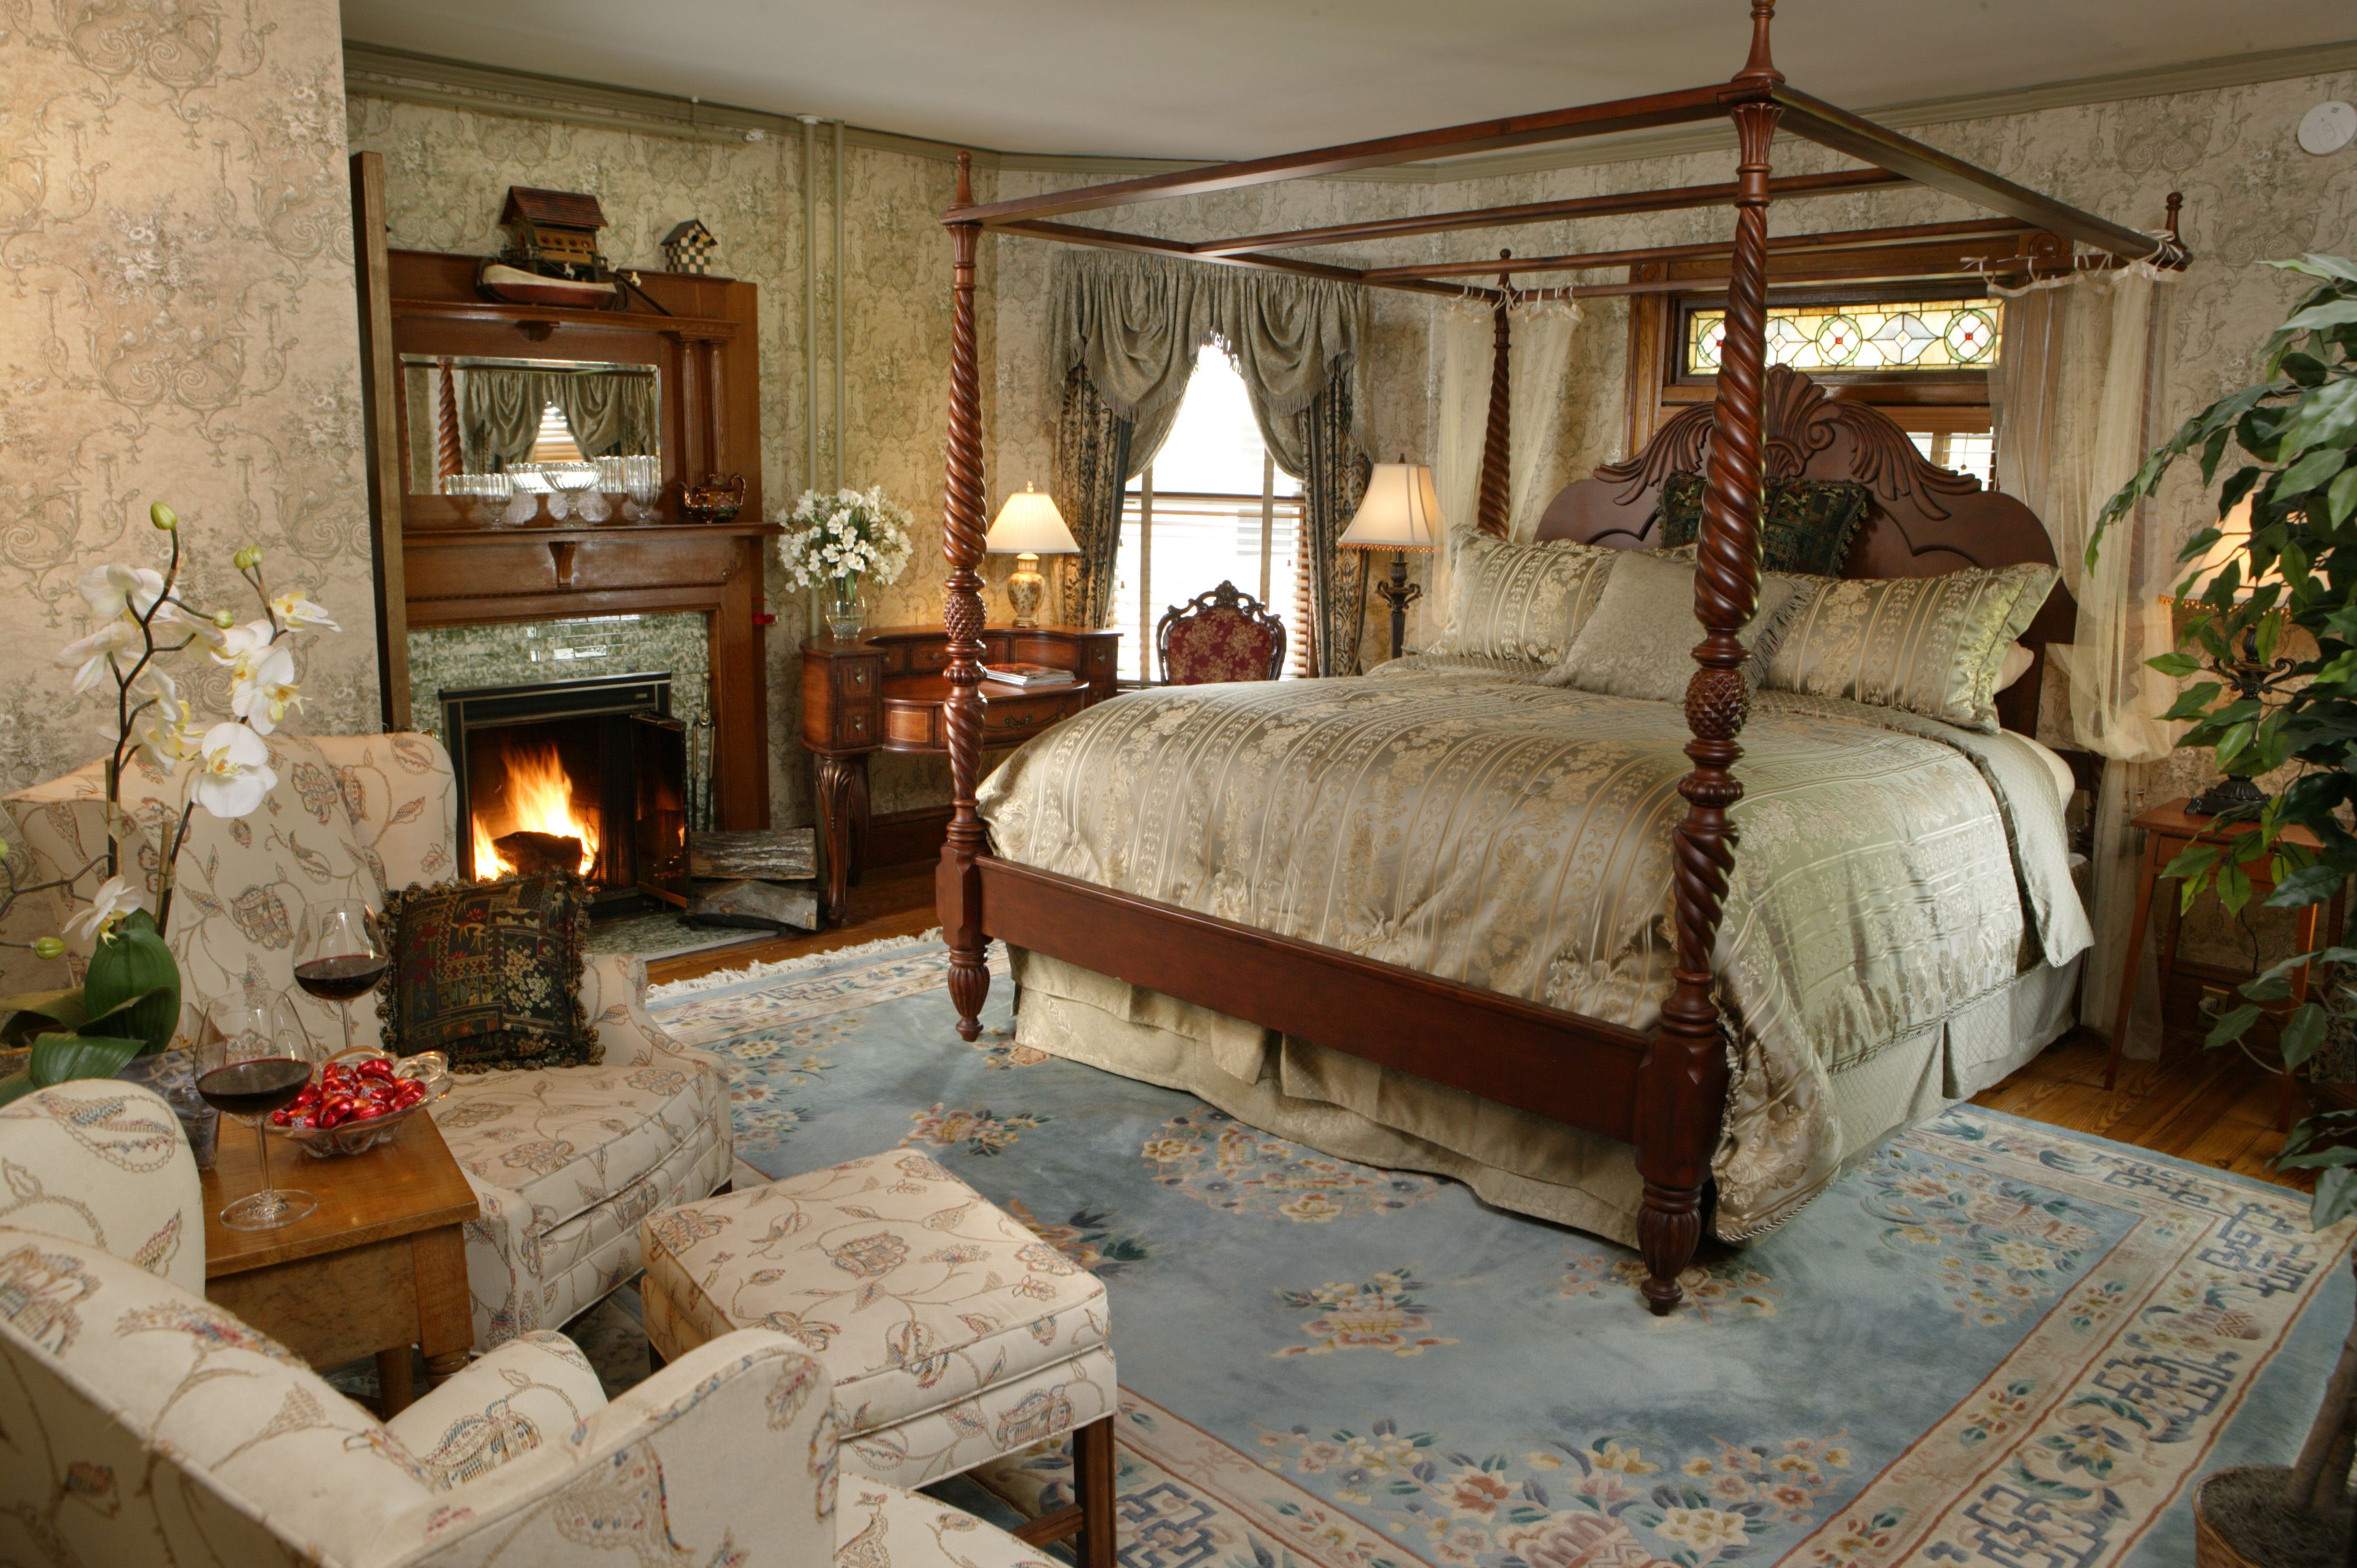 Room 3 with a wood burning fireplace is the perfect place